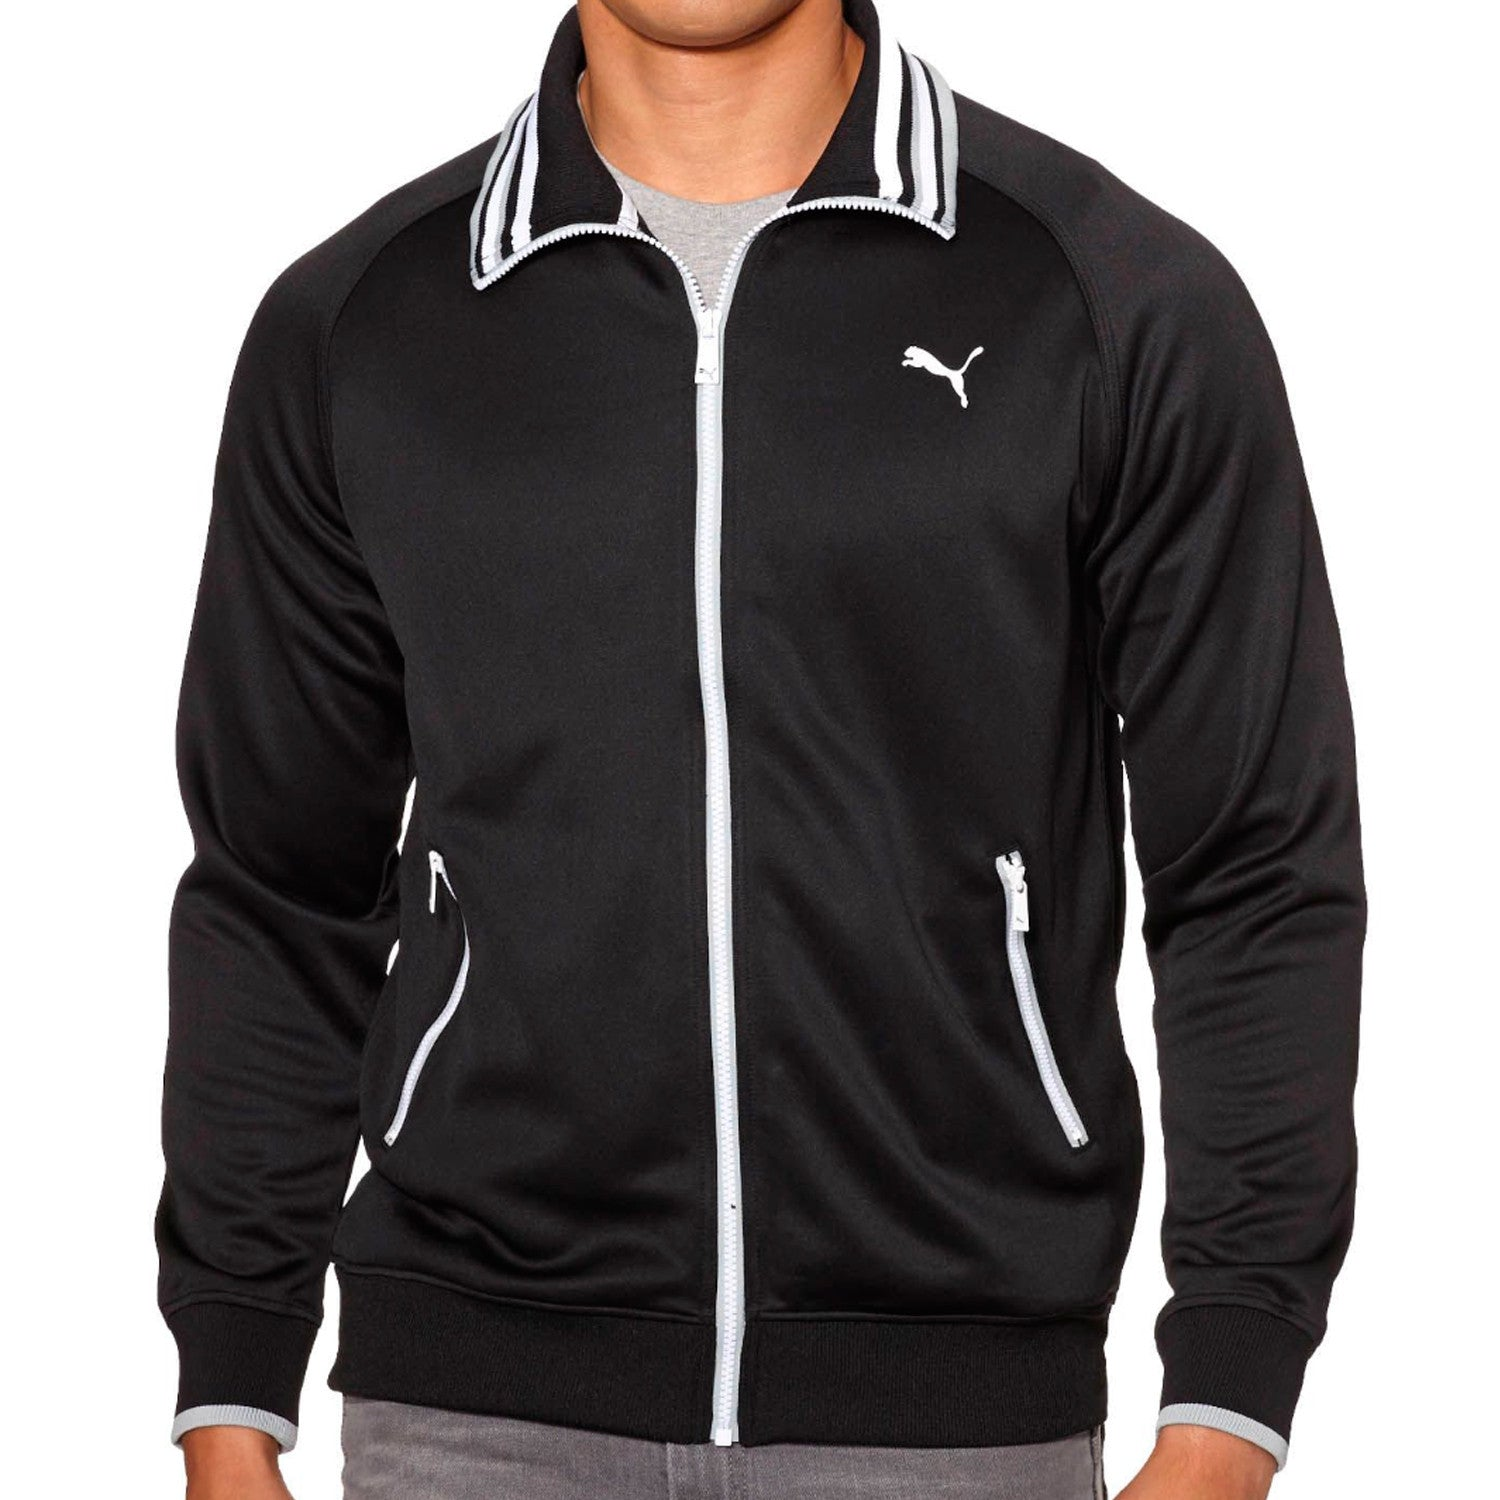 39a25f5938c5 Puma Front-Zip Track Jacket with Striped Collar - Black Quarry - Mens